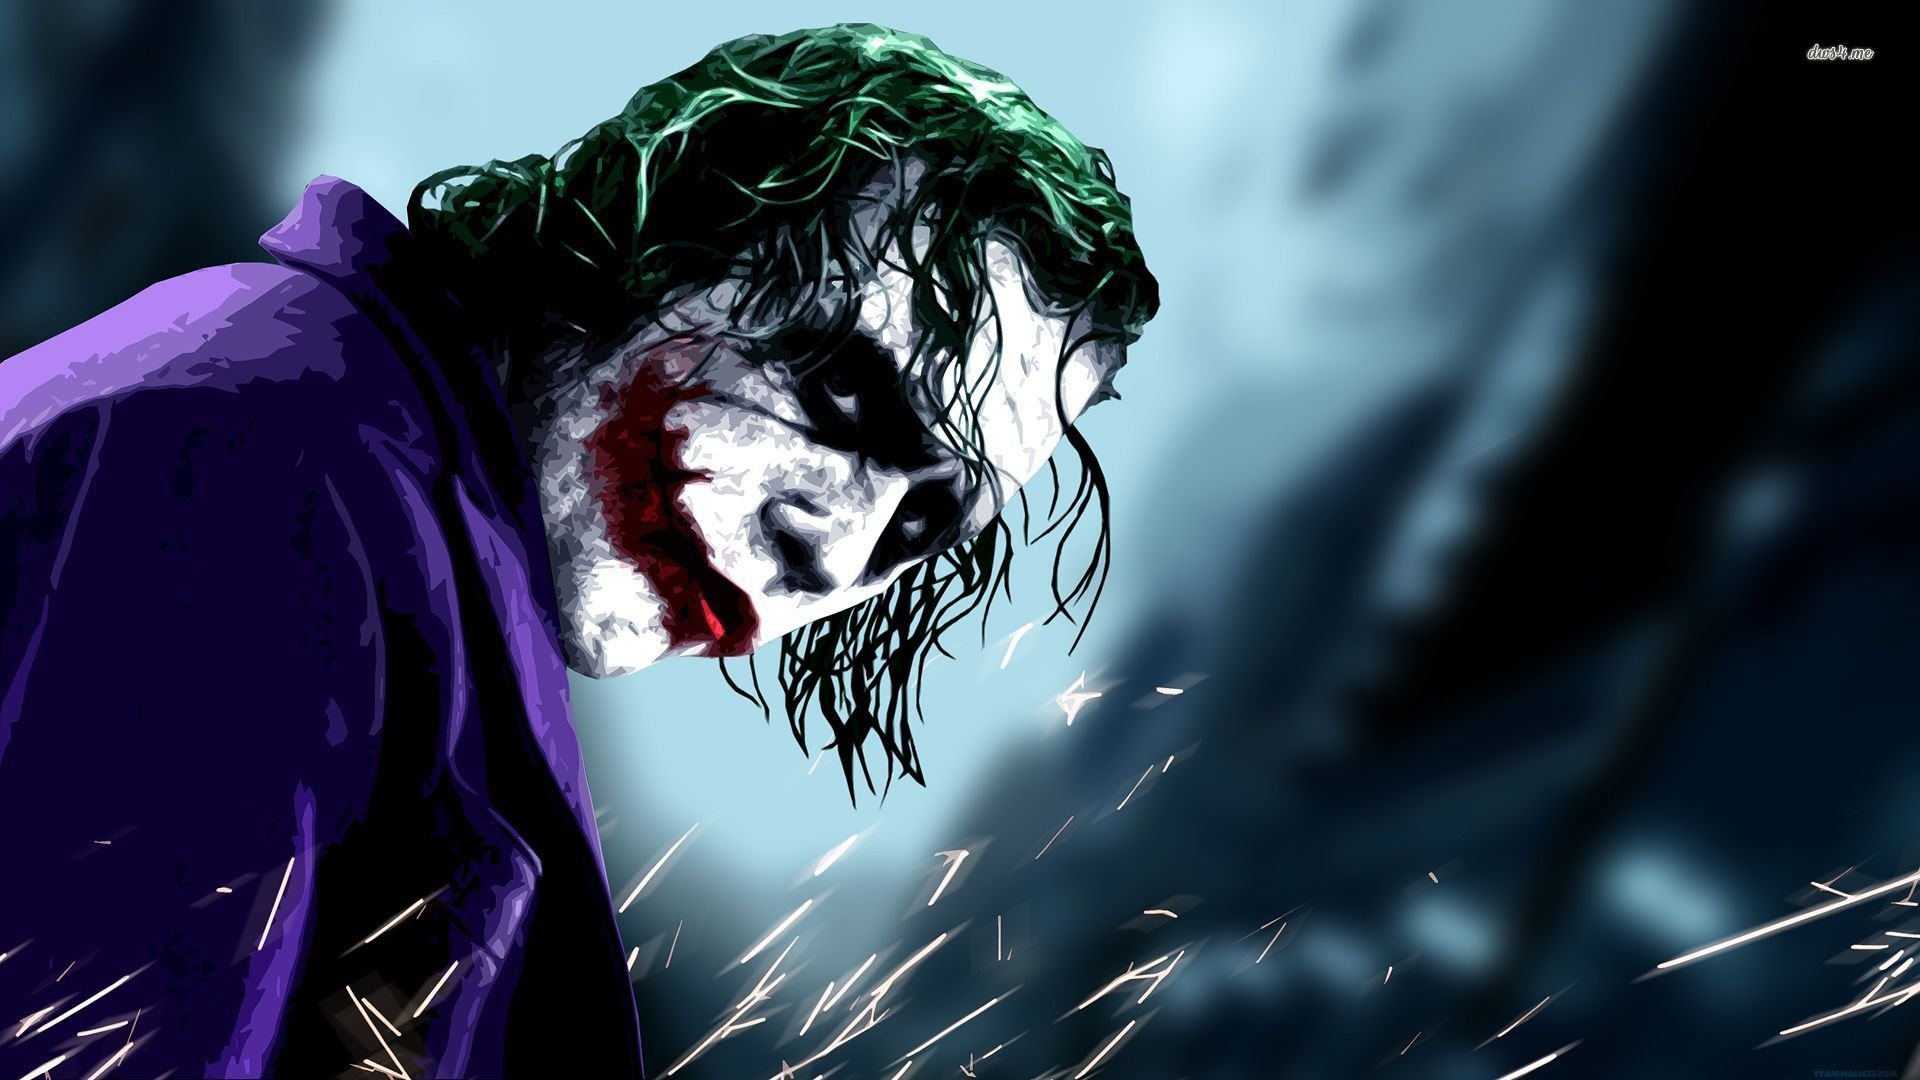 The Joker The Dark Knight Hd Bonny Wallpaper Free Download